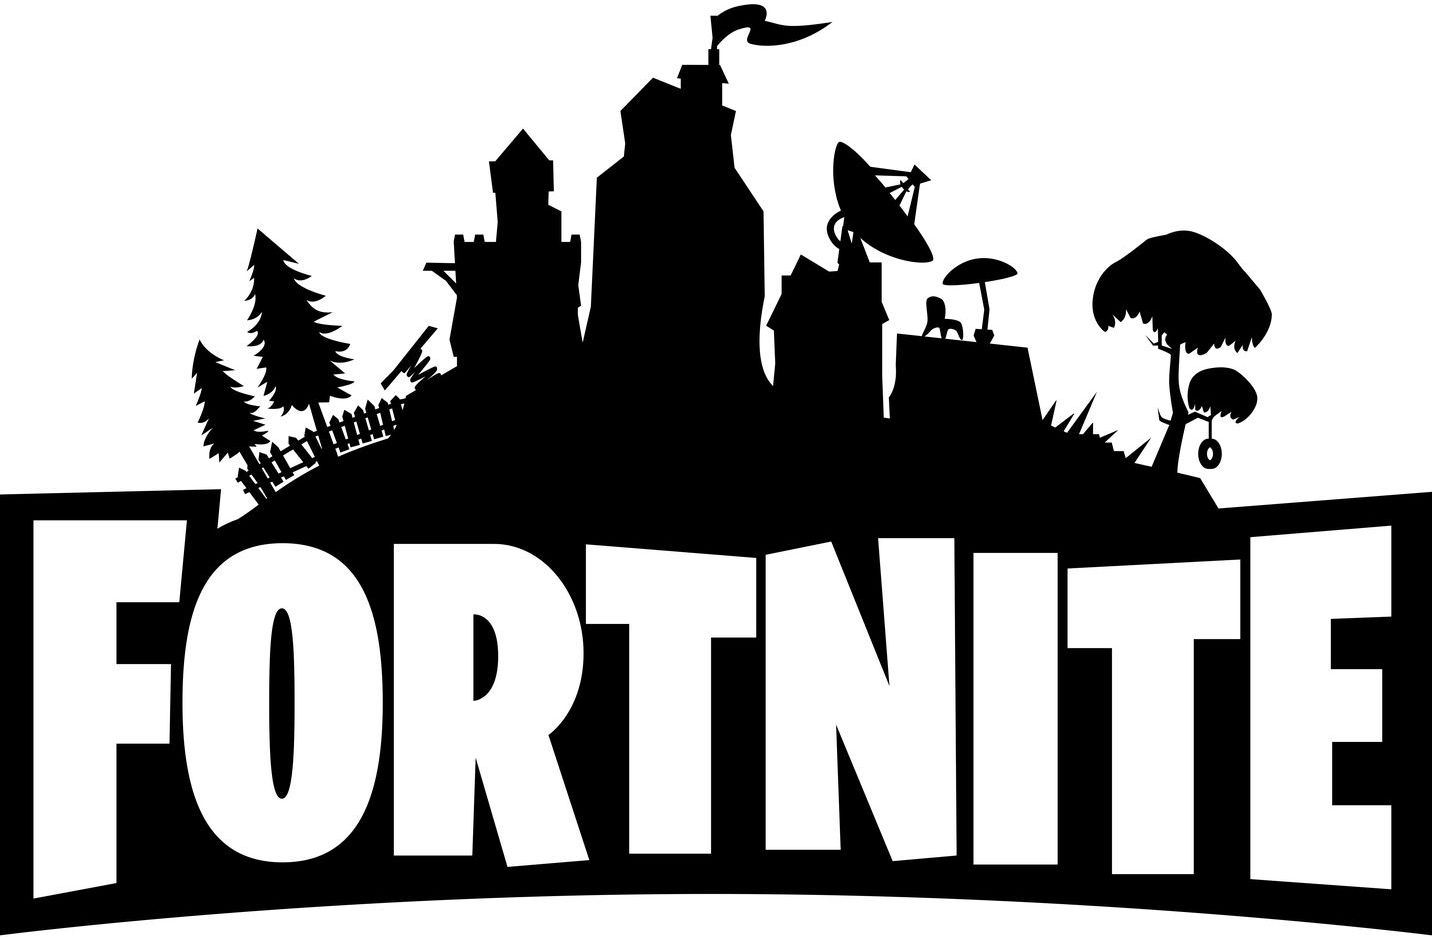 Epic Games Fortnite Gets New And Colorful 1080p